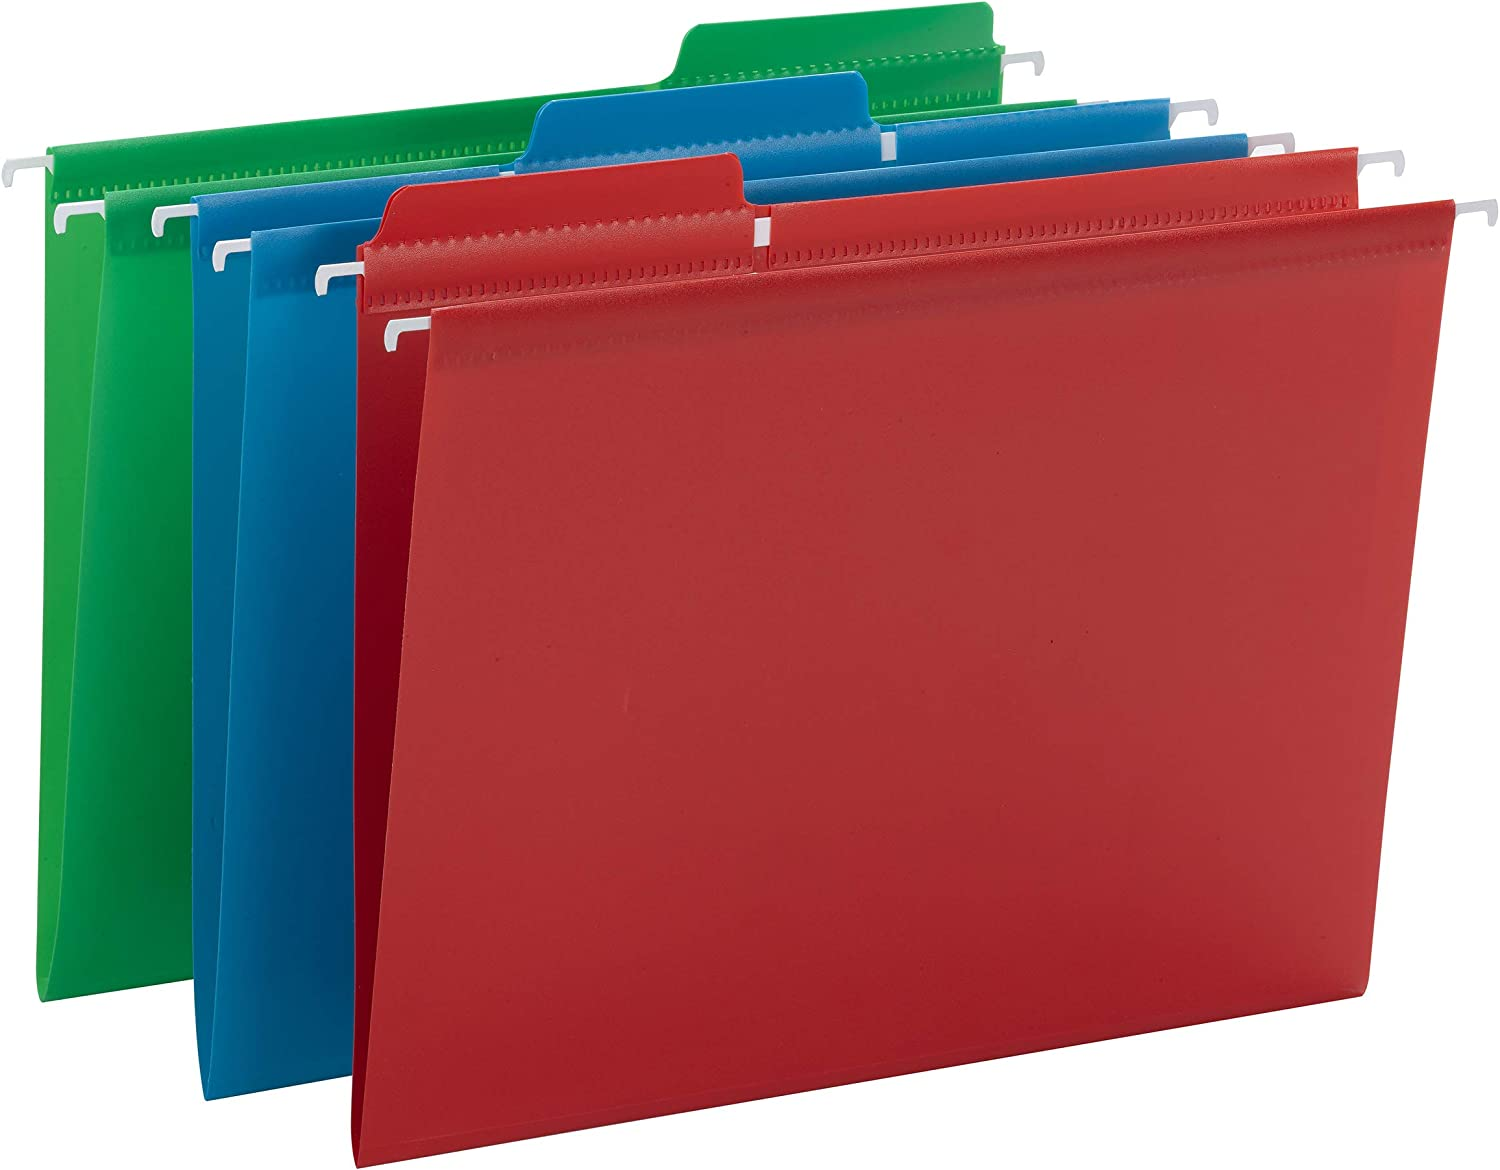 Smead Poly FasTab Hanging File Folder, 1/3-Cut Tab, Letter Size, Assorted Primary Colors, 18 per Box (64028)